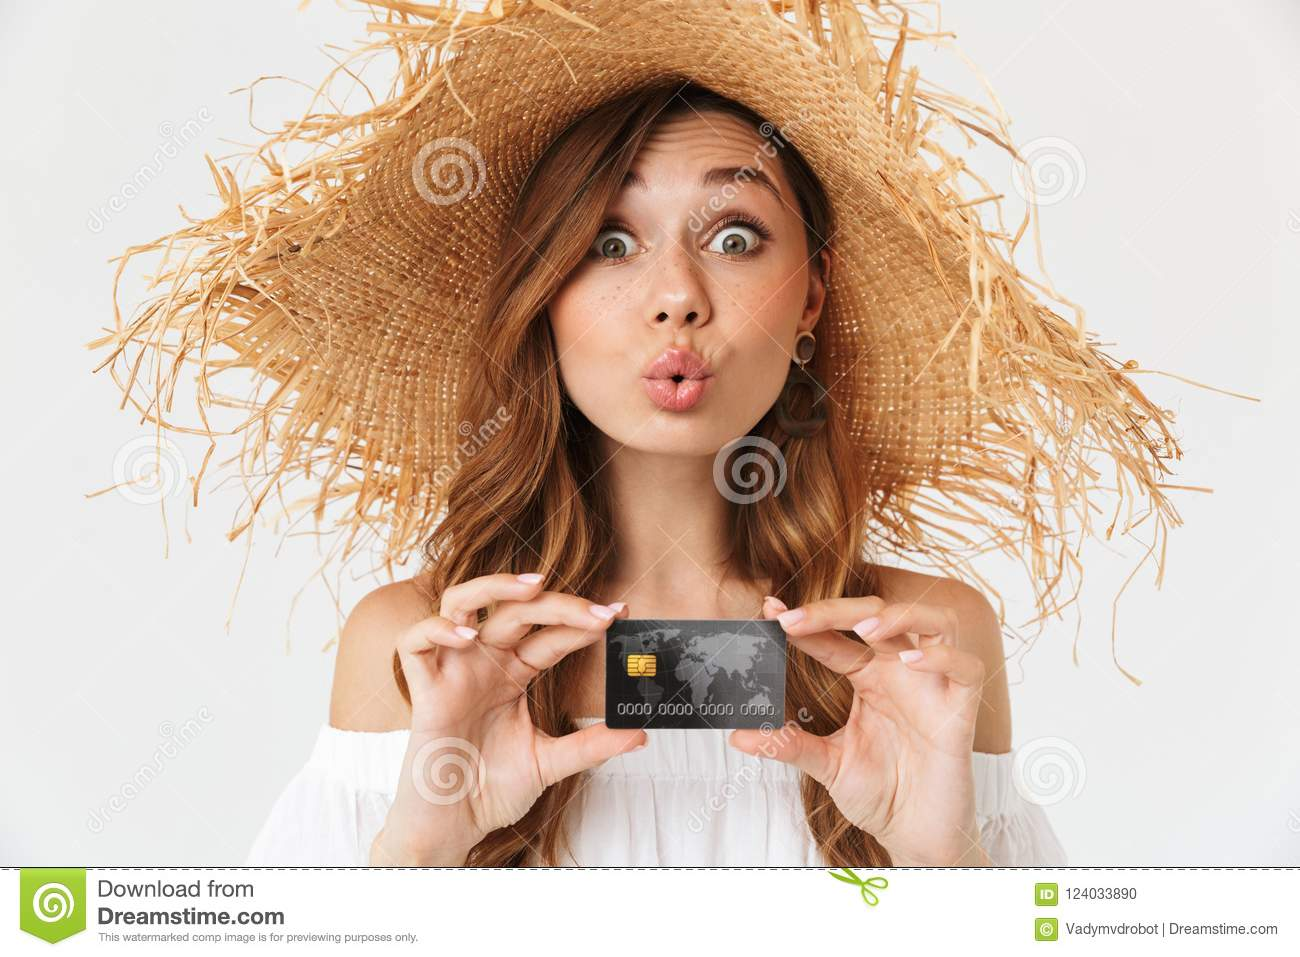 Portrait of cheerful young woman 20s wearing big straw hat rejoicing while holding credit card, isolated over white background